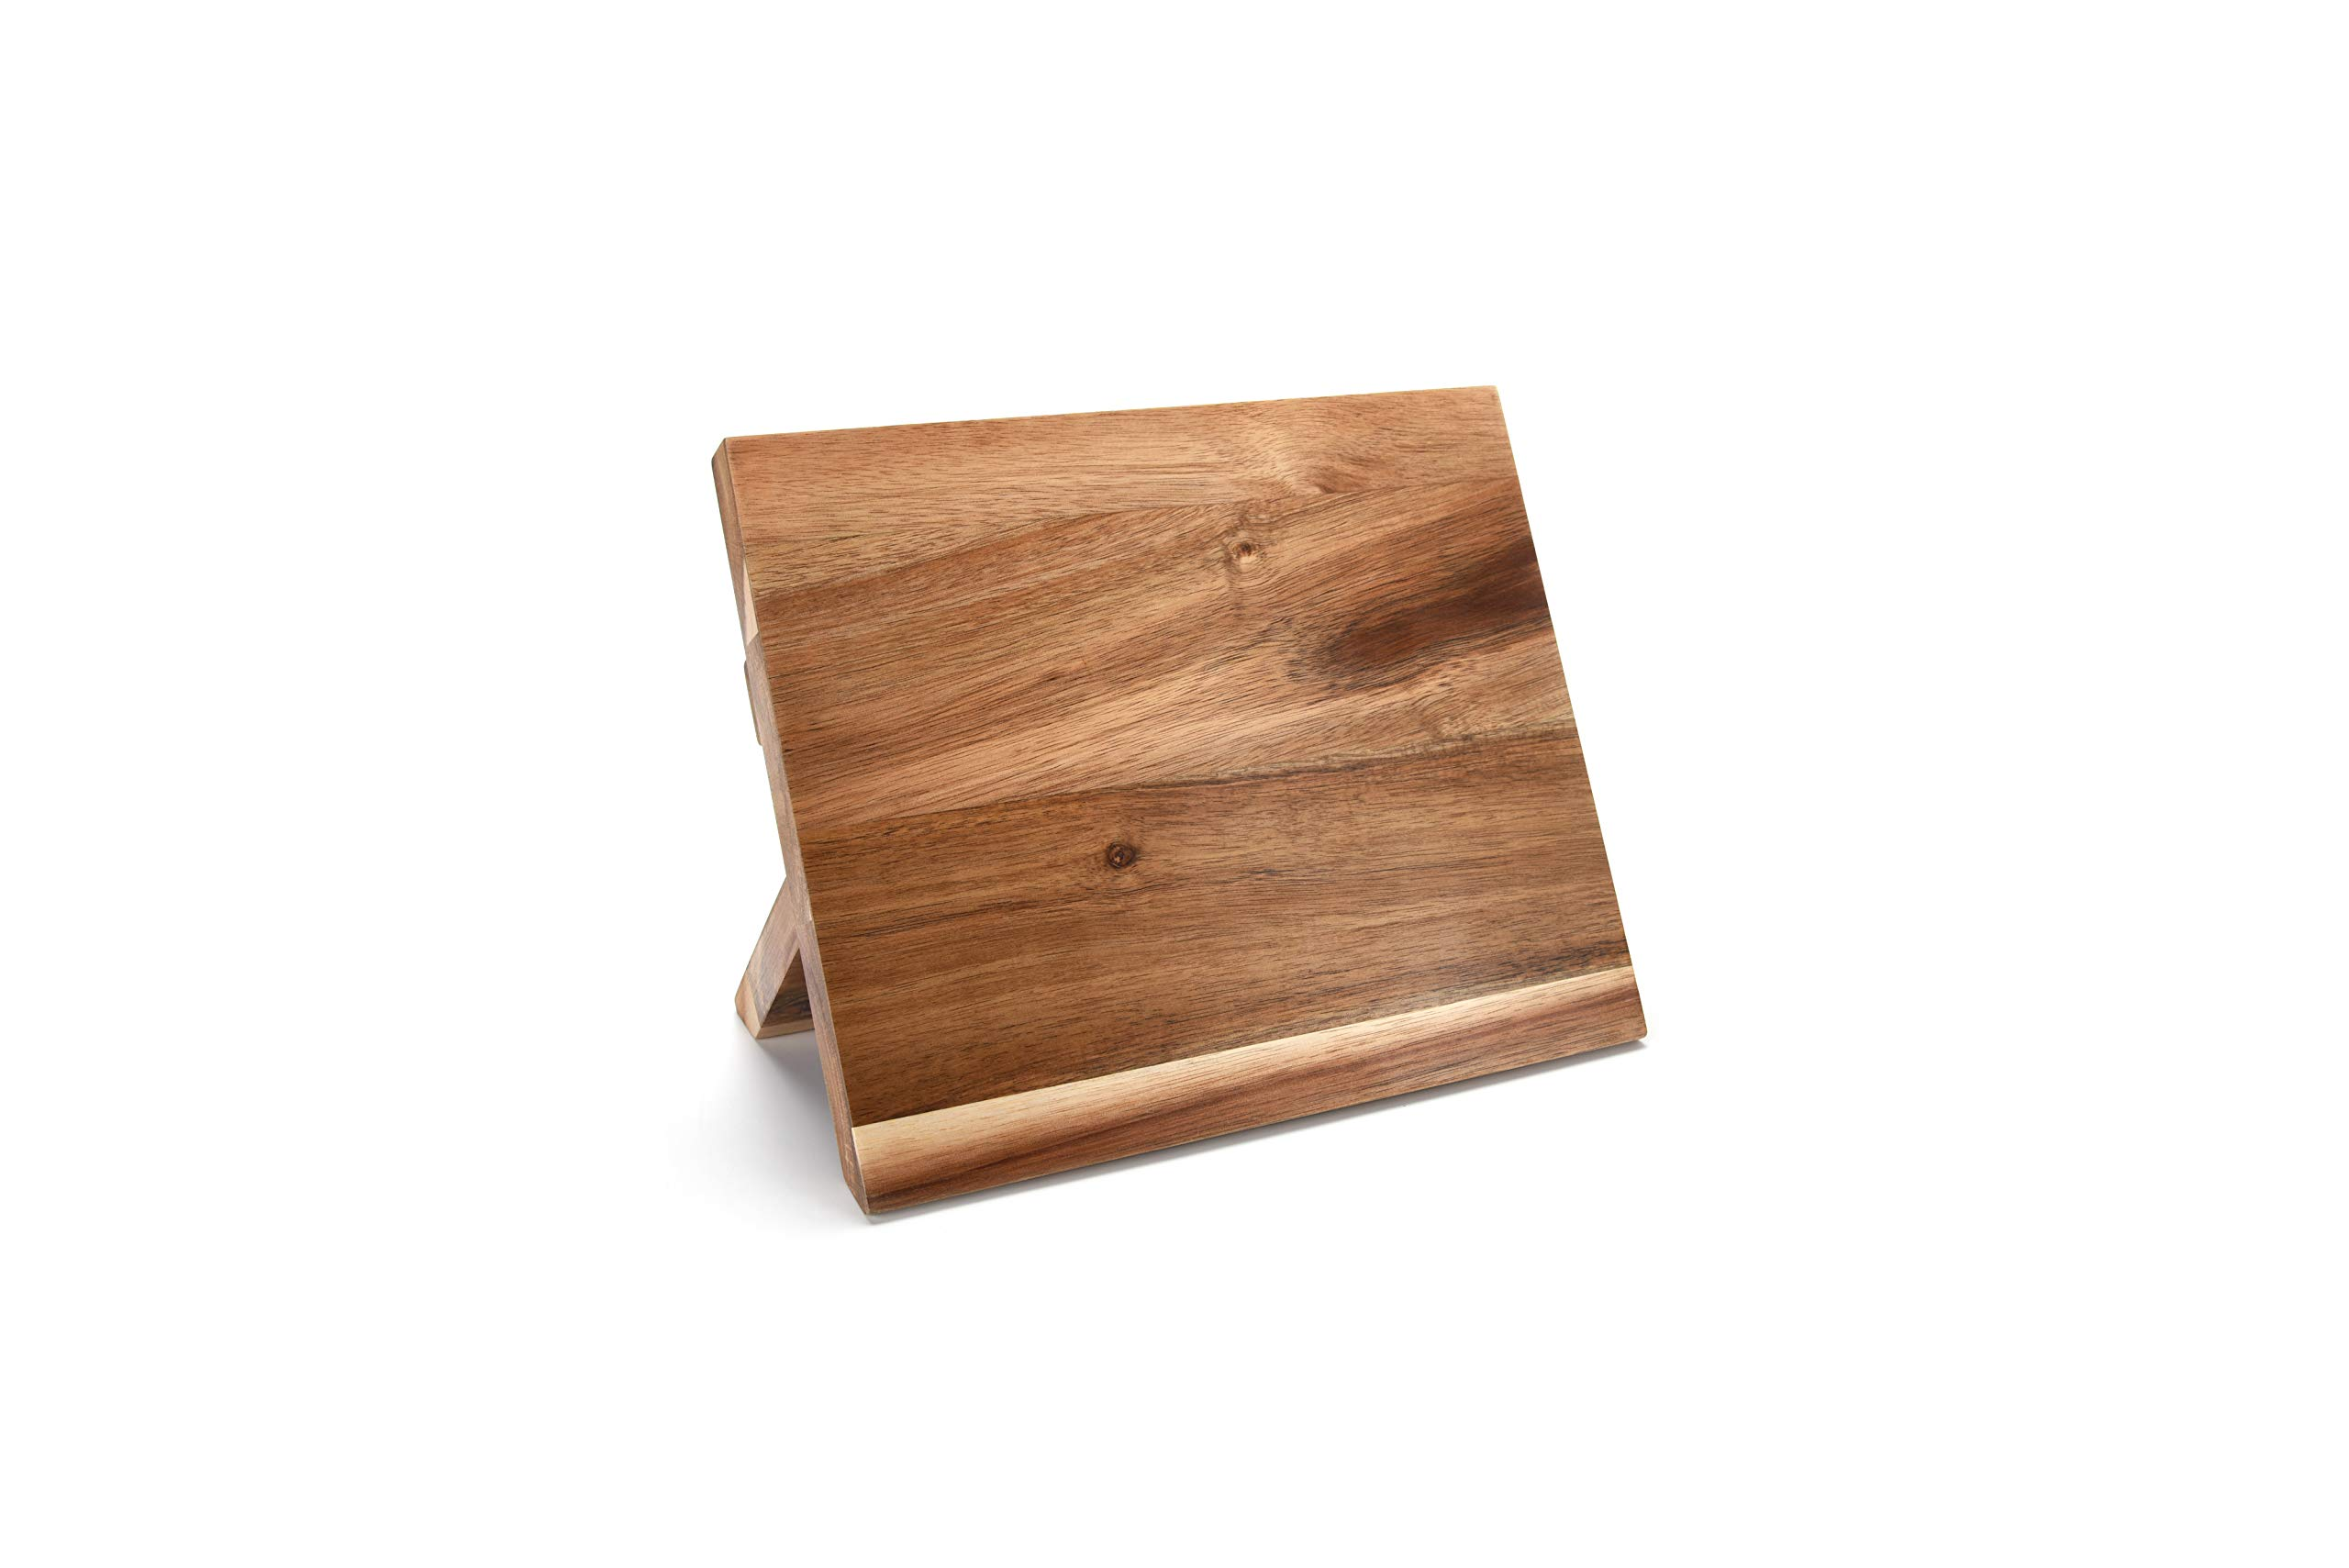 Acacia Magnetic Knife Stand and knife organizer includes honing tool and knife sharpener - premium knife block made from natural acacia wood for displaying your kitchen knives - by Bregonia by Danby